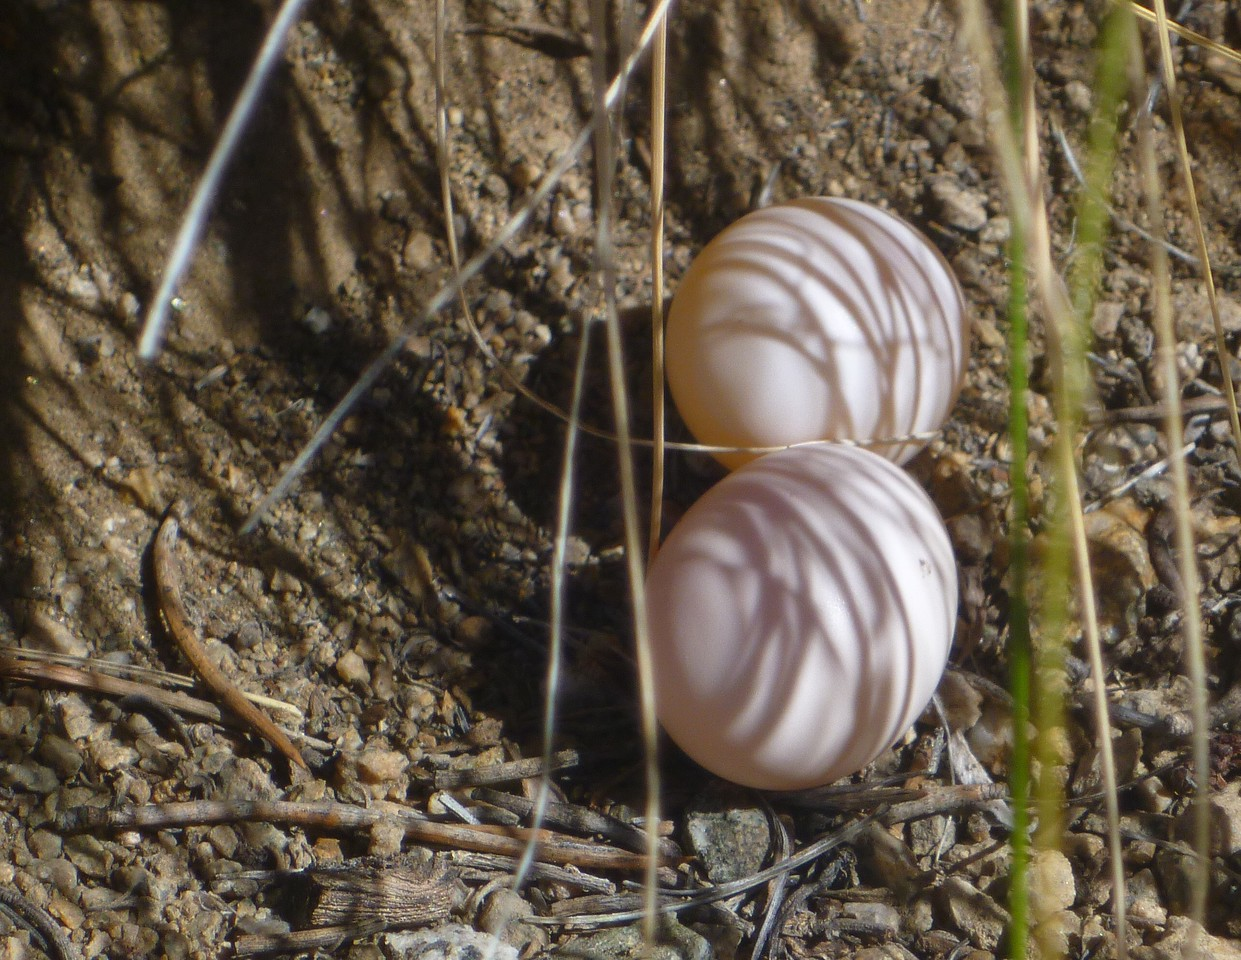 Day 5- I discover some eggs on the trail between Beveridge Ridge Cabin and Beveridge Mine site. I shield them with a rock to give some protection.